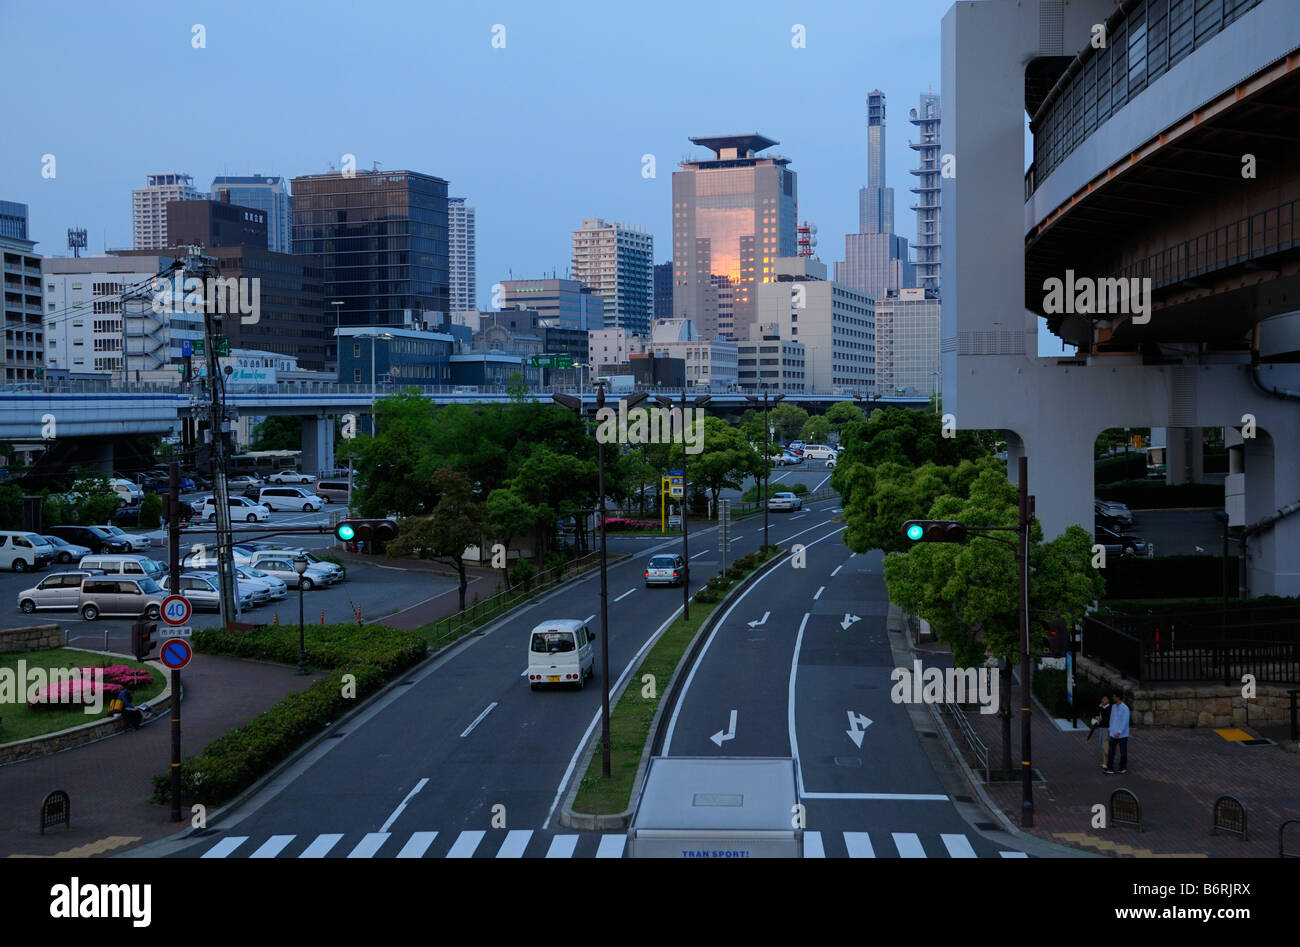 Downtown skyline and Highway, Kobe JP - Stock Image